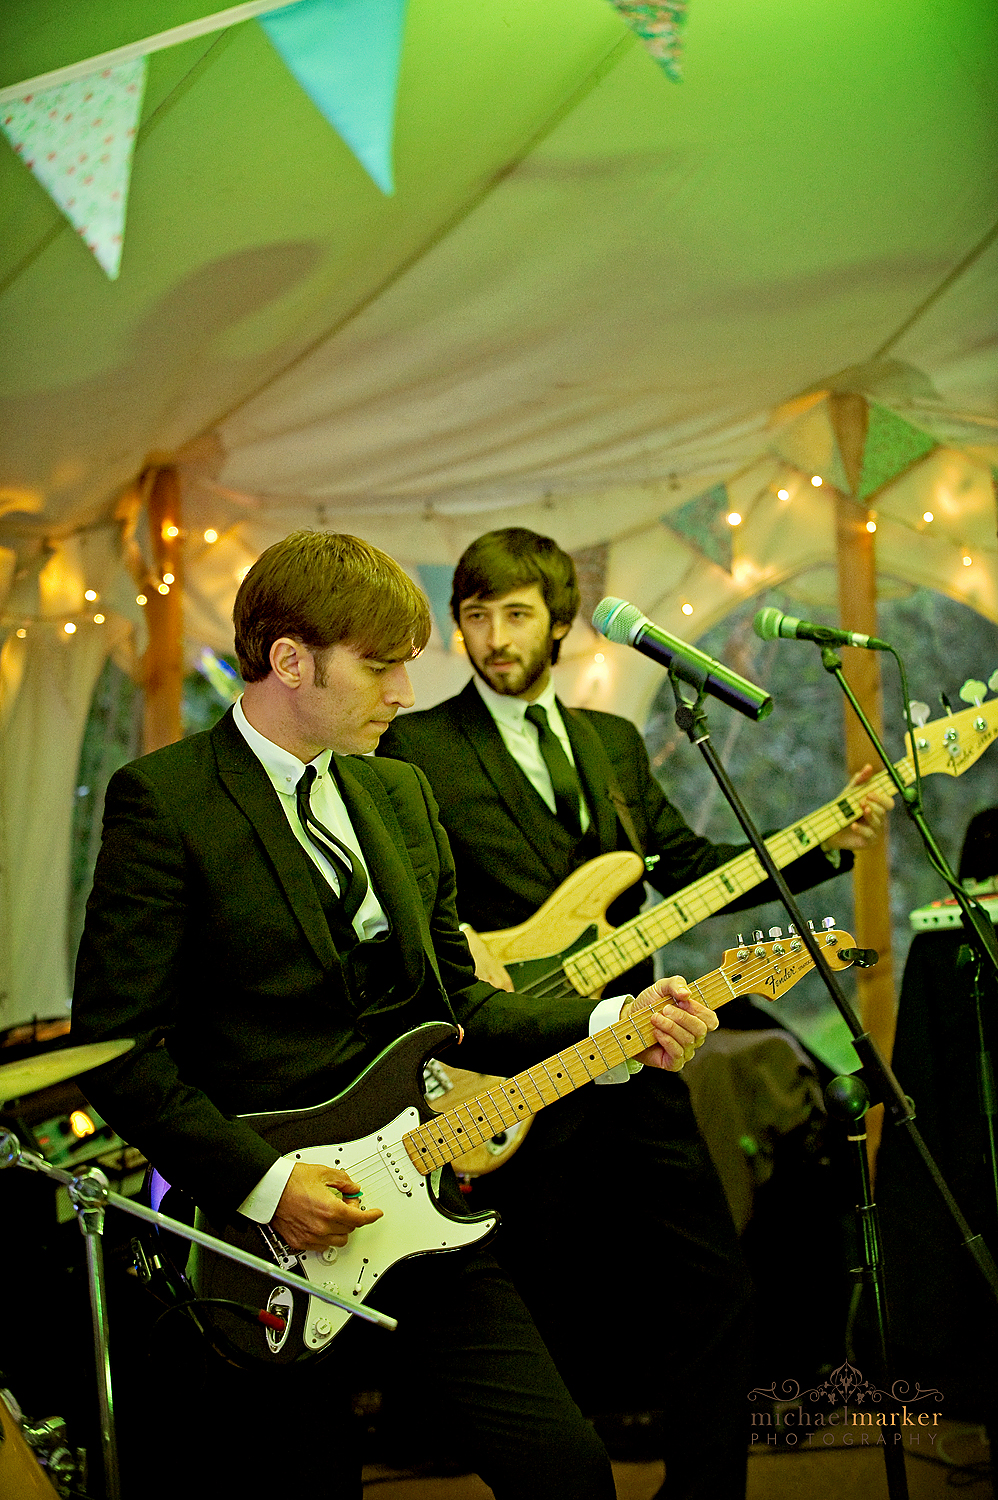 Wiltshire-wedding-band-Zoots-5